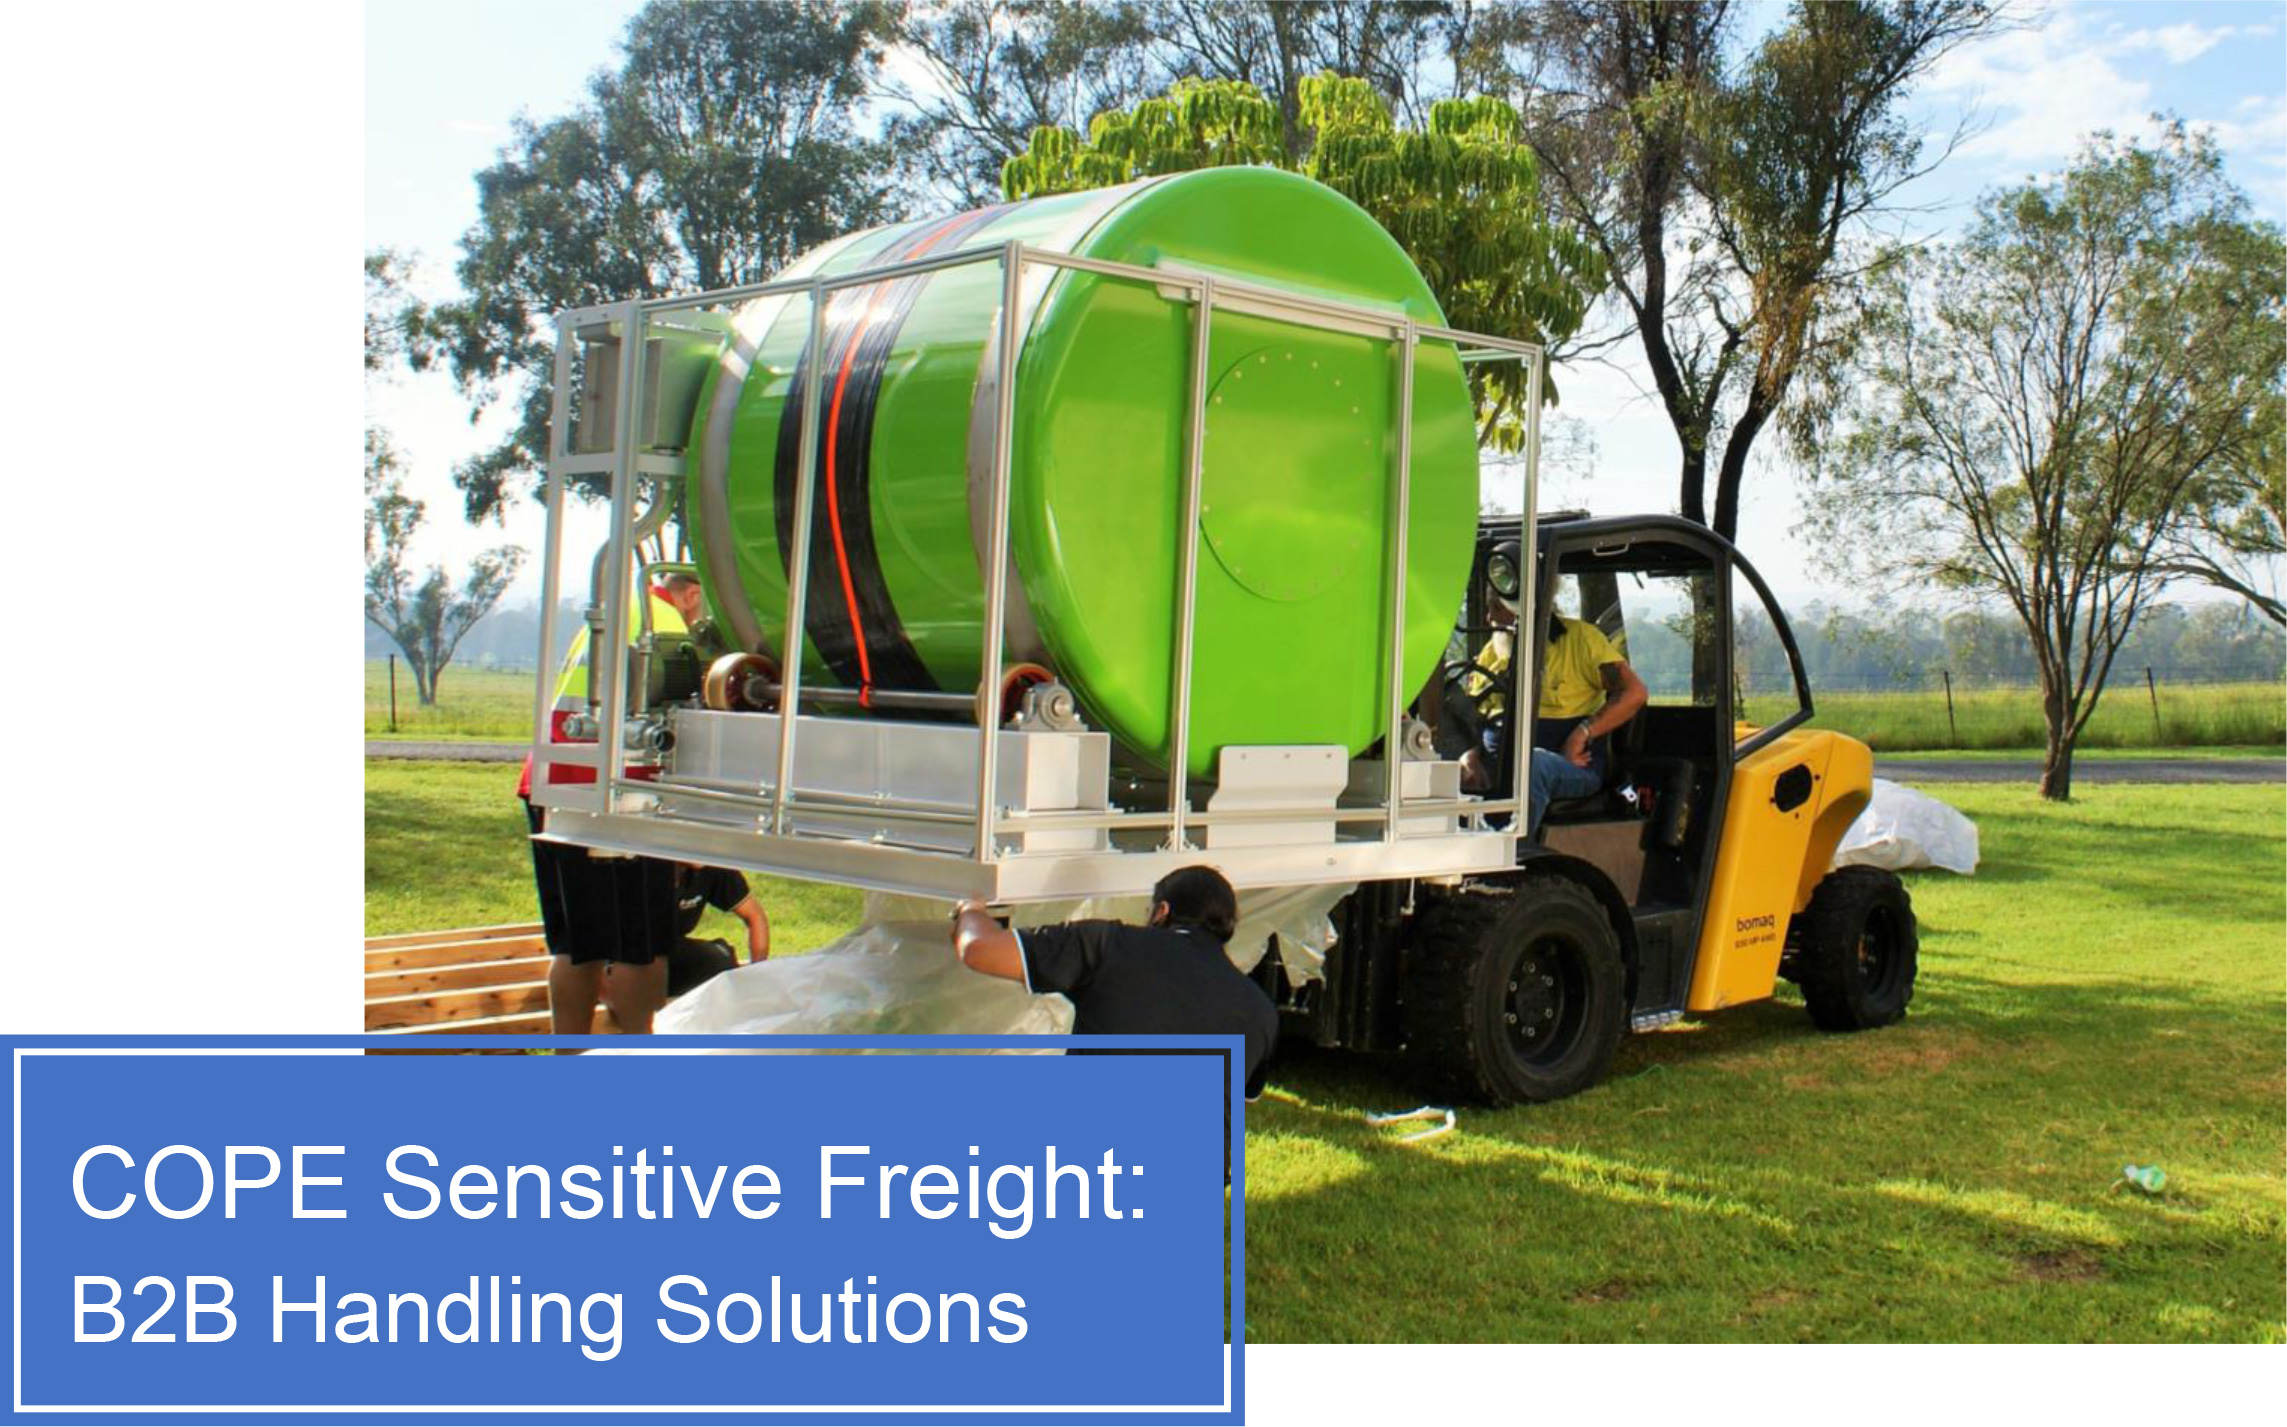 COPE Sensitive Freight: B2B Handling Solutions